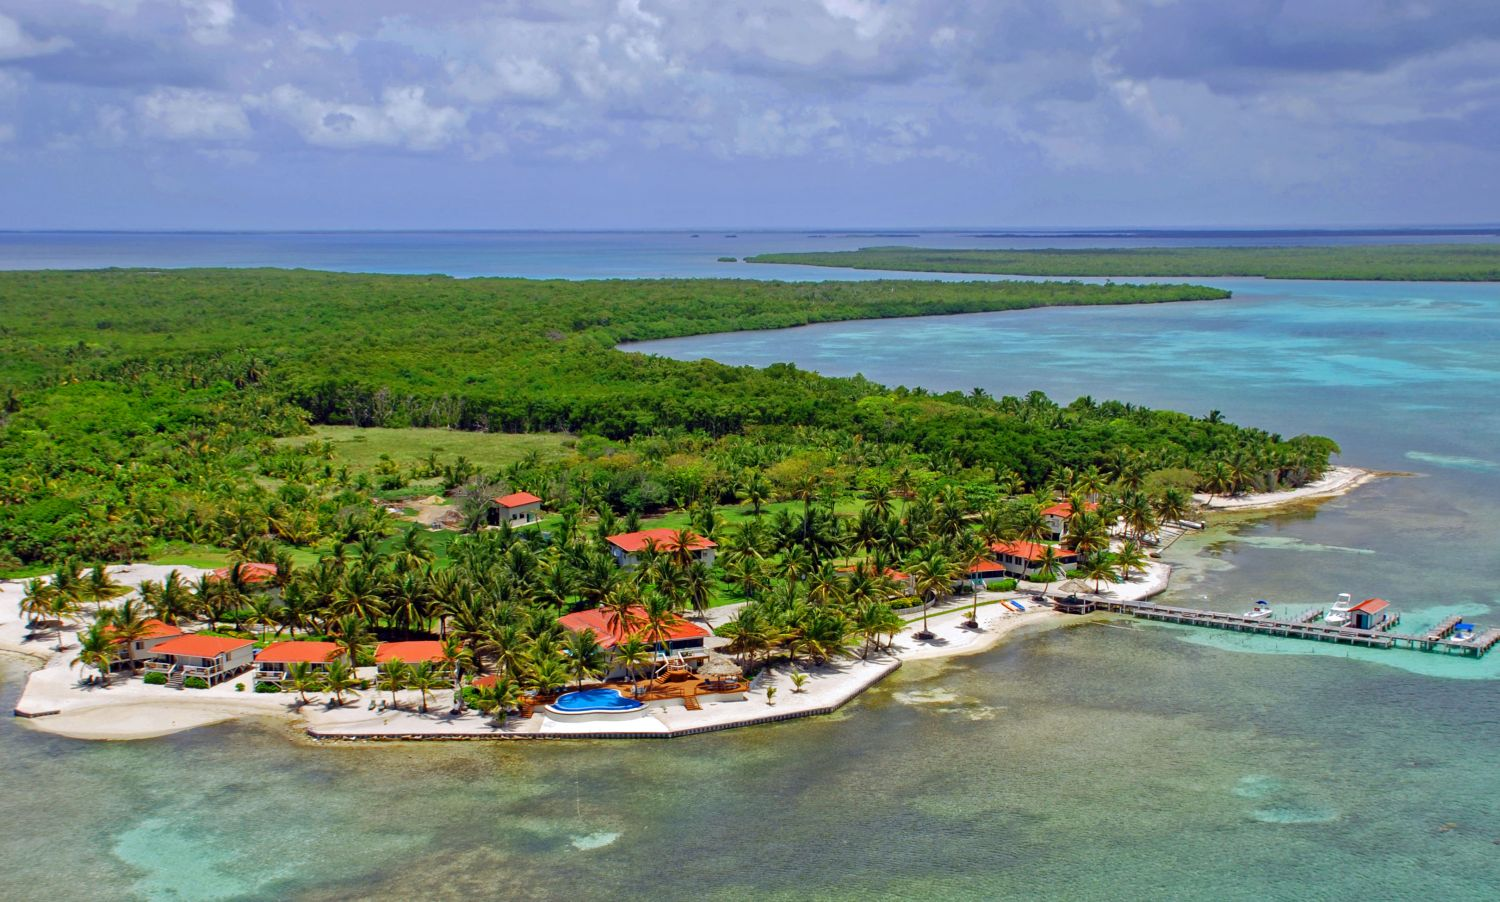 Belize's top fly fishing, scuba diving, and snorkeling lodge - Turneffe Flats